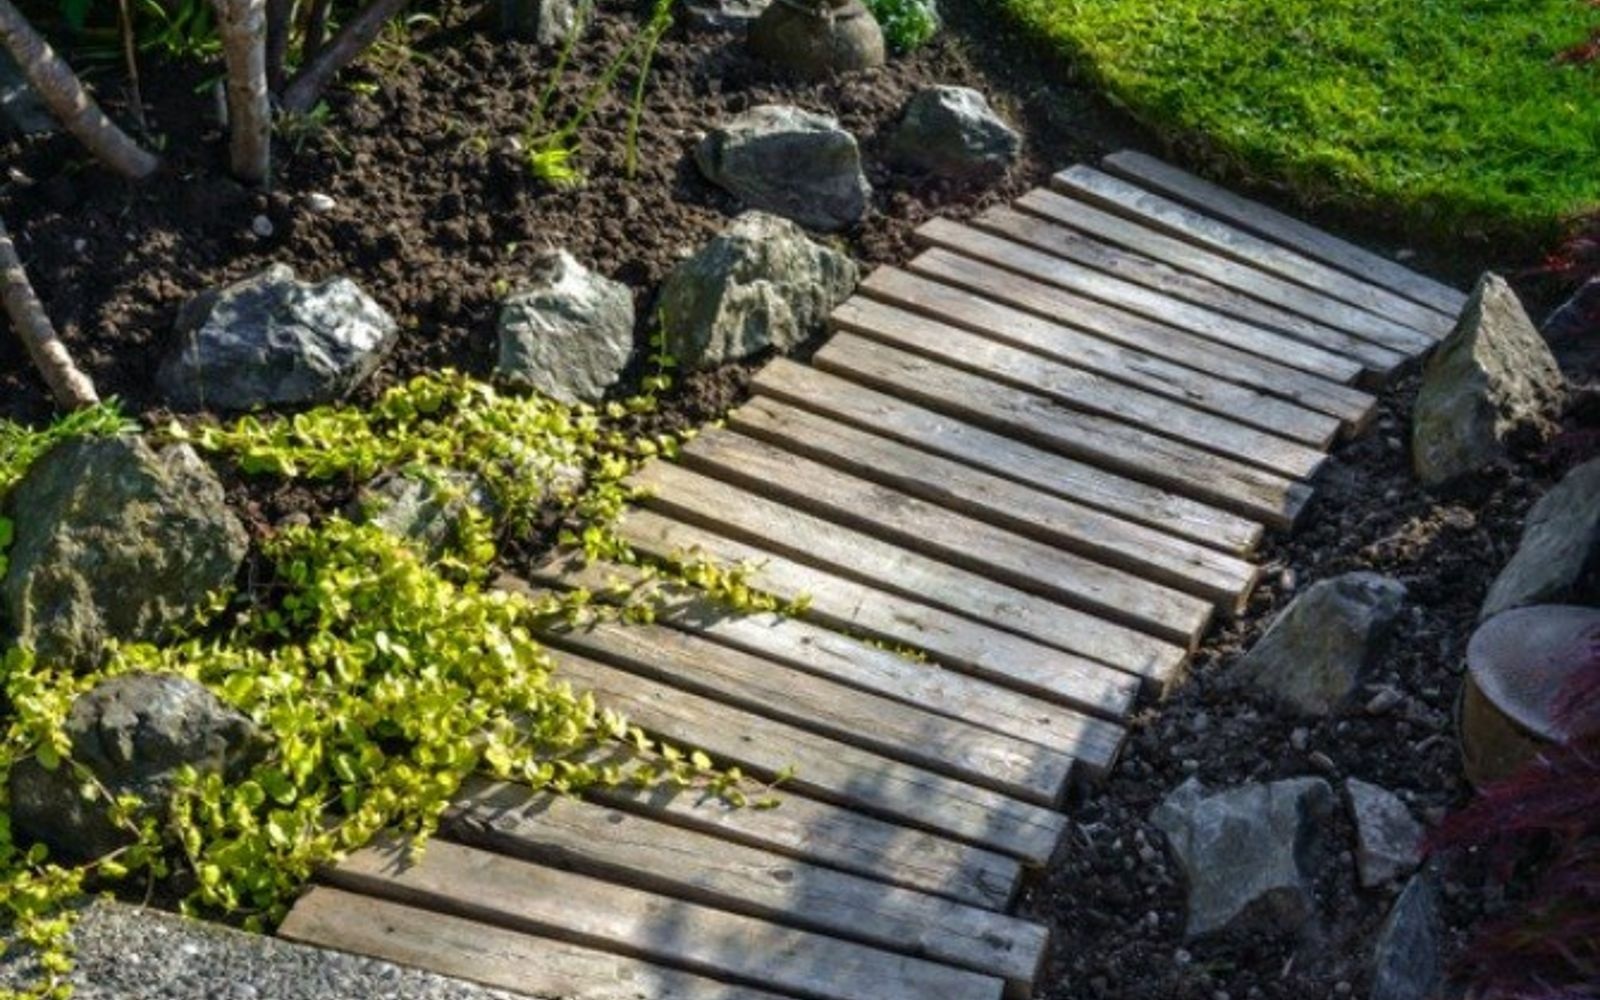 s 17 amazing garden features we ve been saving for summer, gardening, outdoor living, ponds water features, Her sweet simple pallet plank walkway